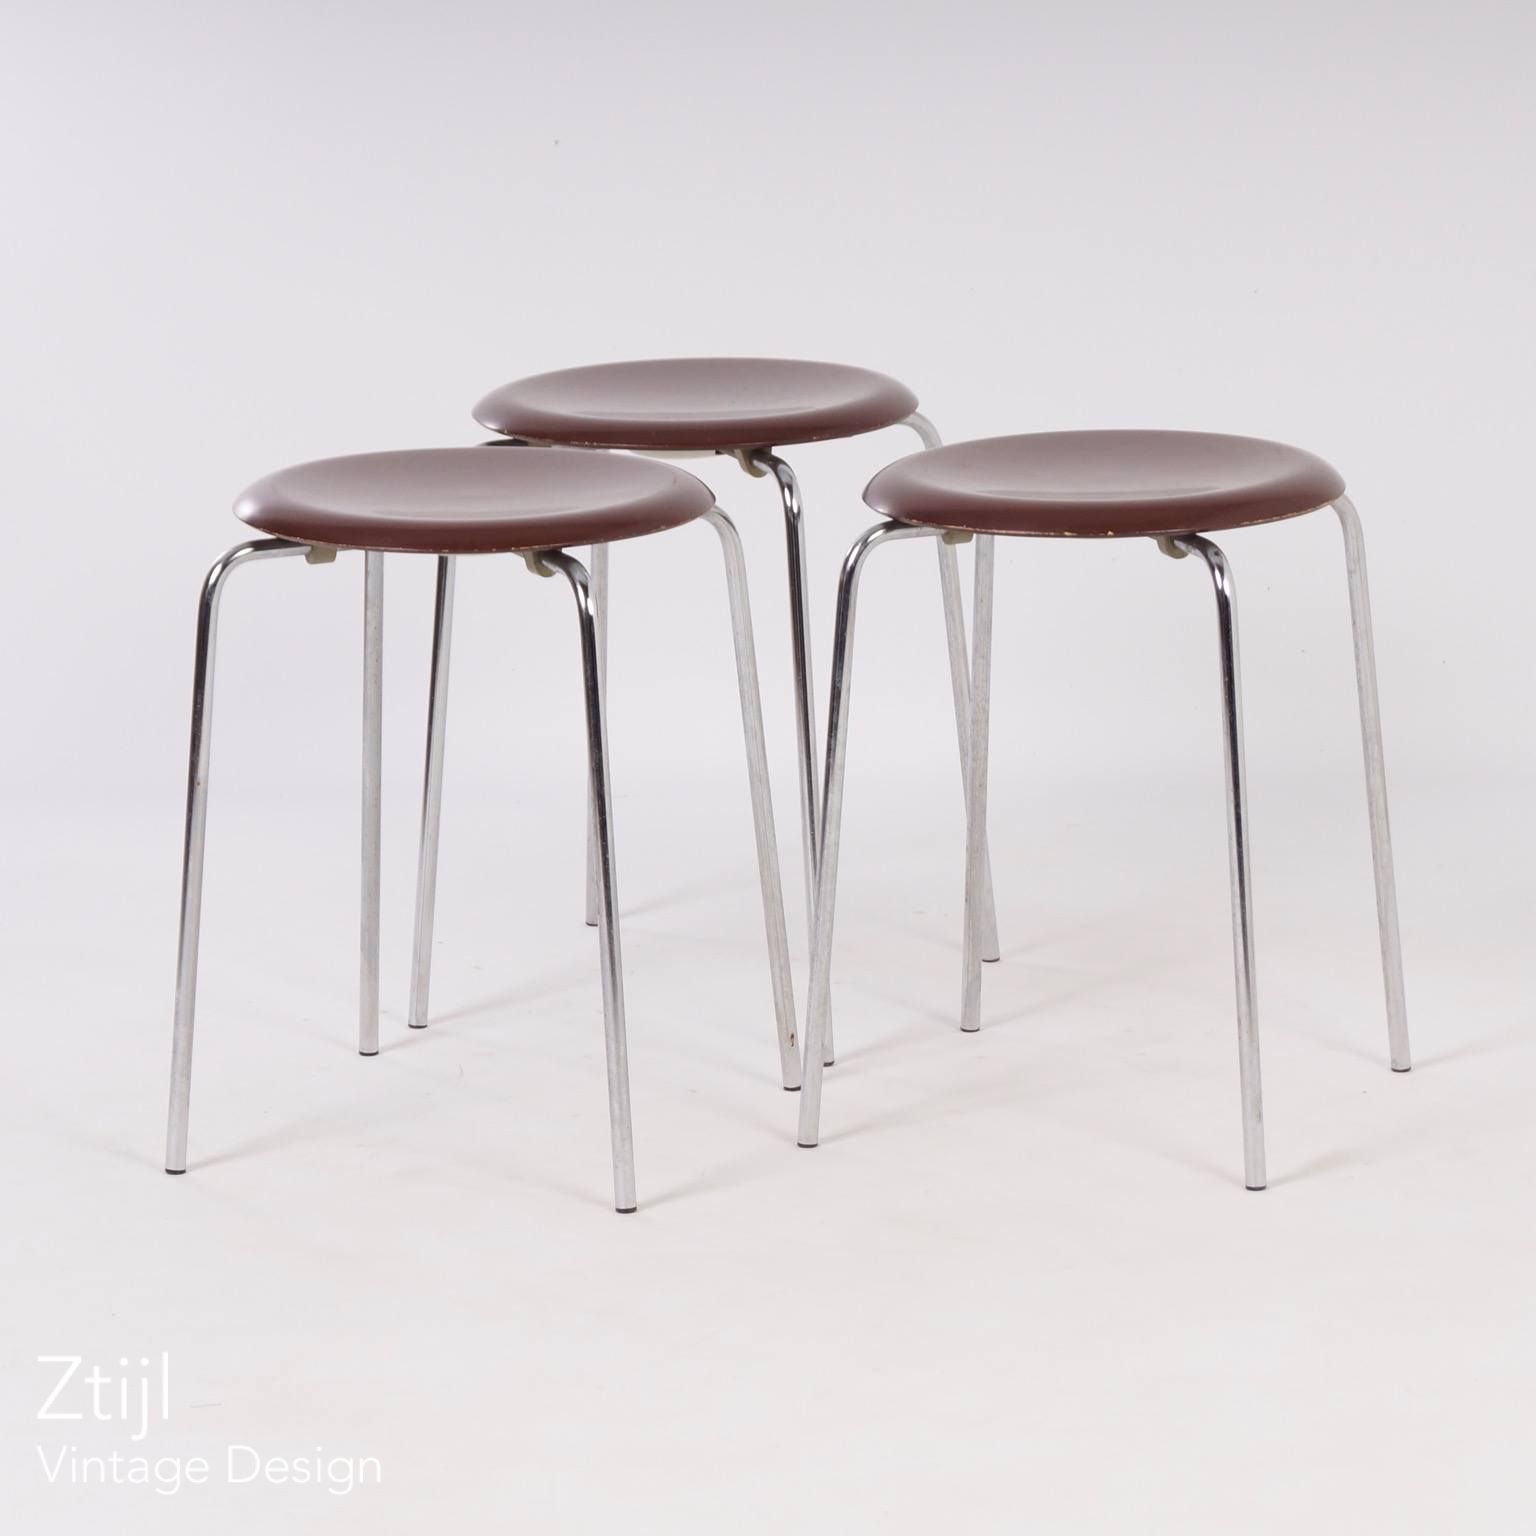 Vintage Danish Dot Stool 3170 By Arne Jacobsen For Fritz